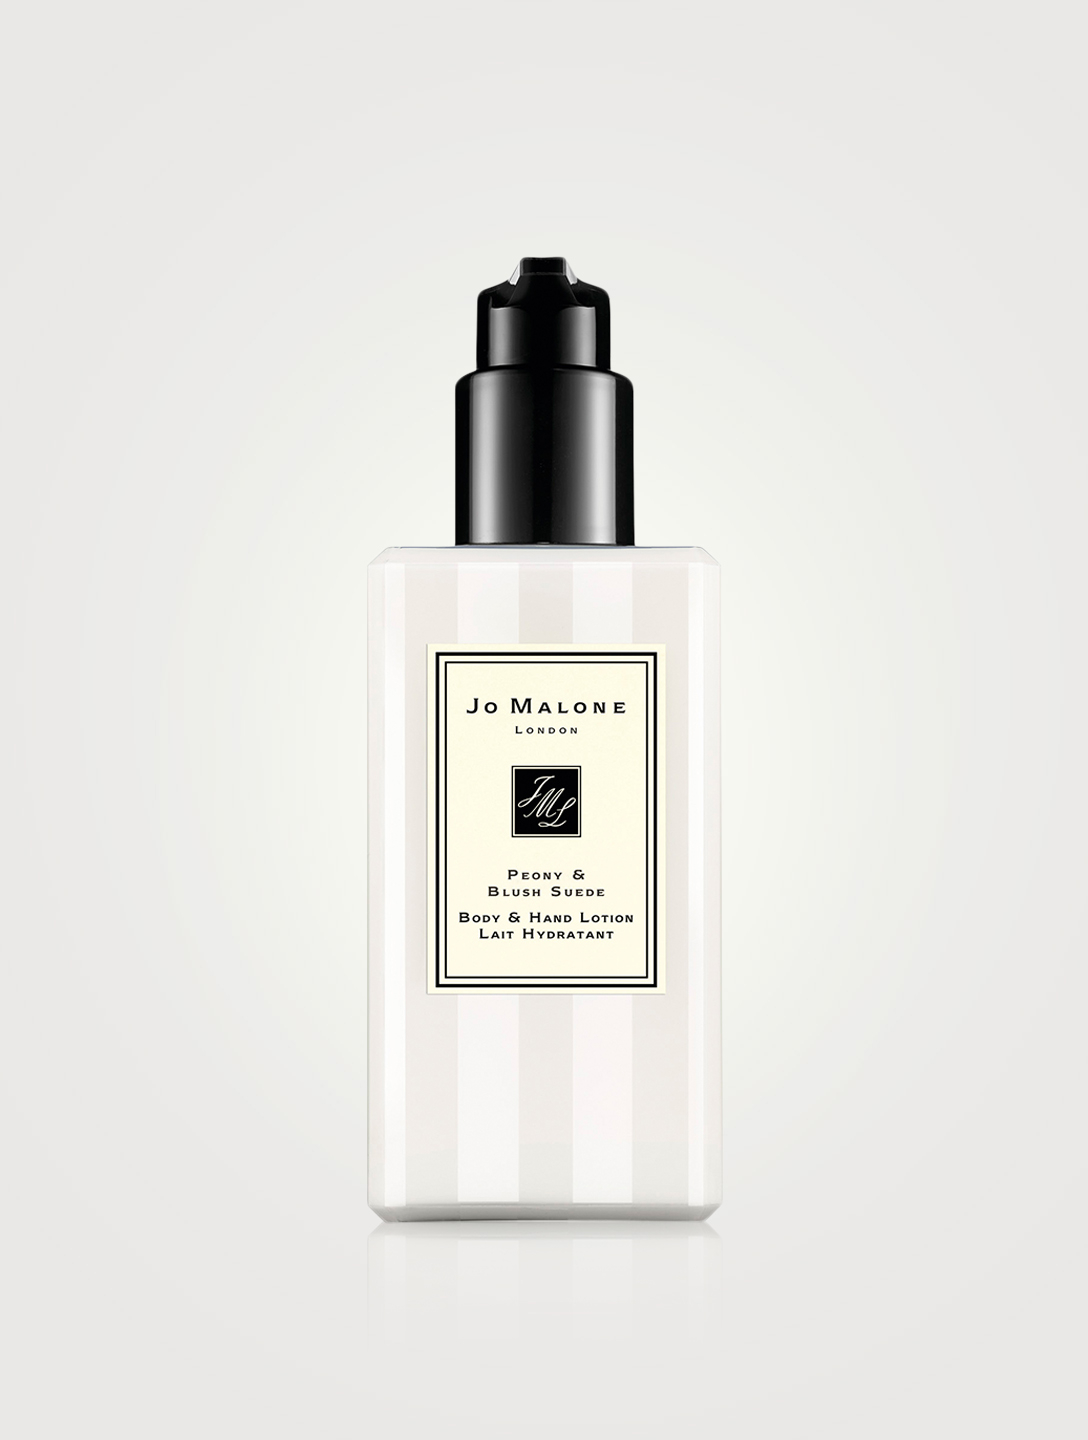 JO MALONE LONDON Peony & Blush Suede Body & Hand Lotion Beauty